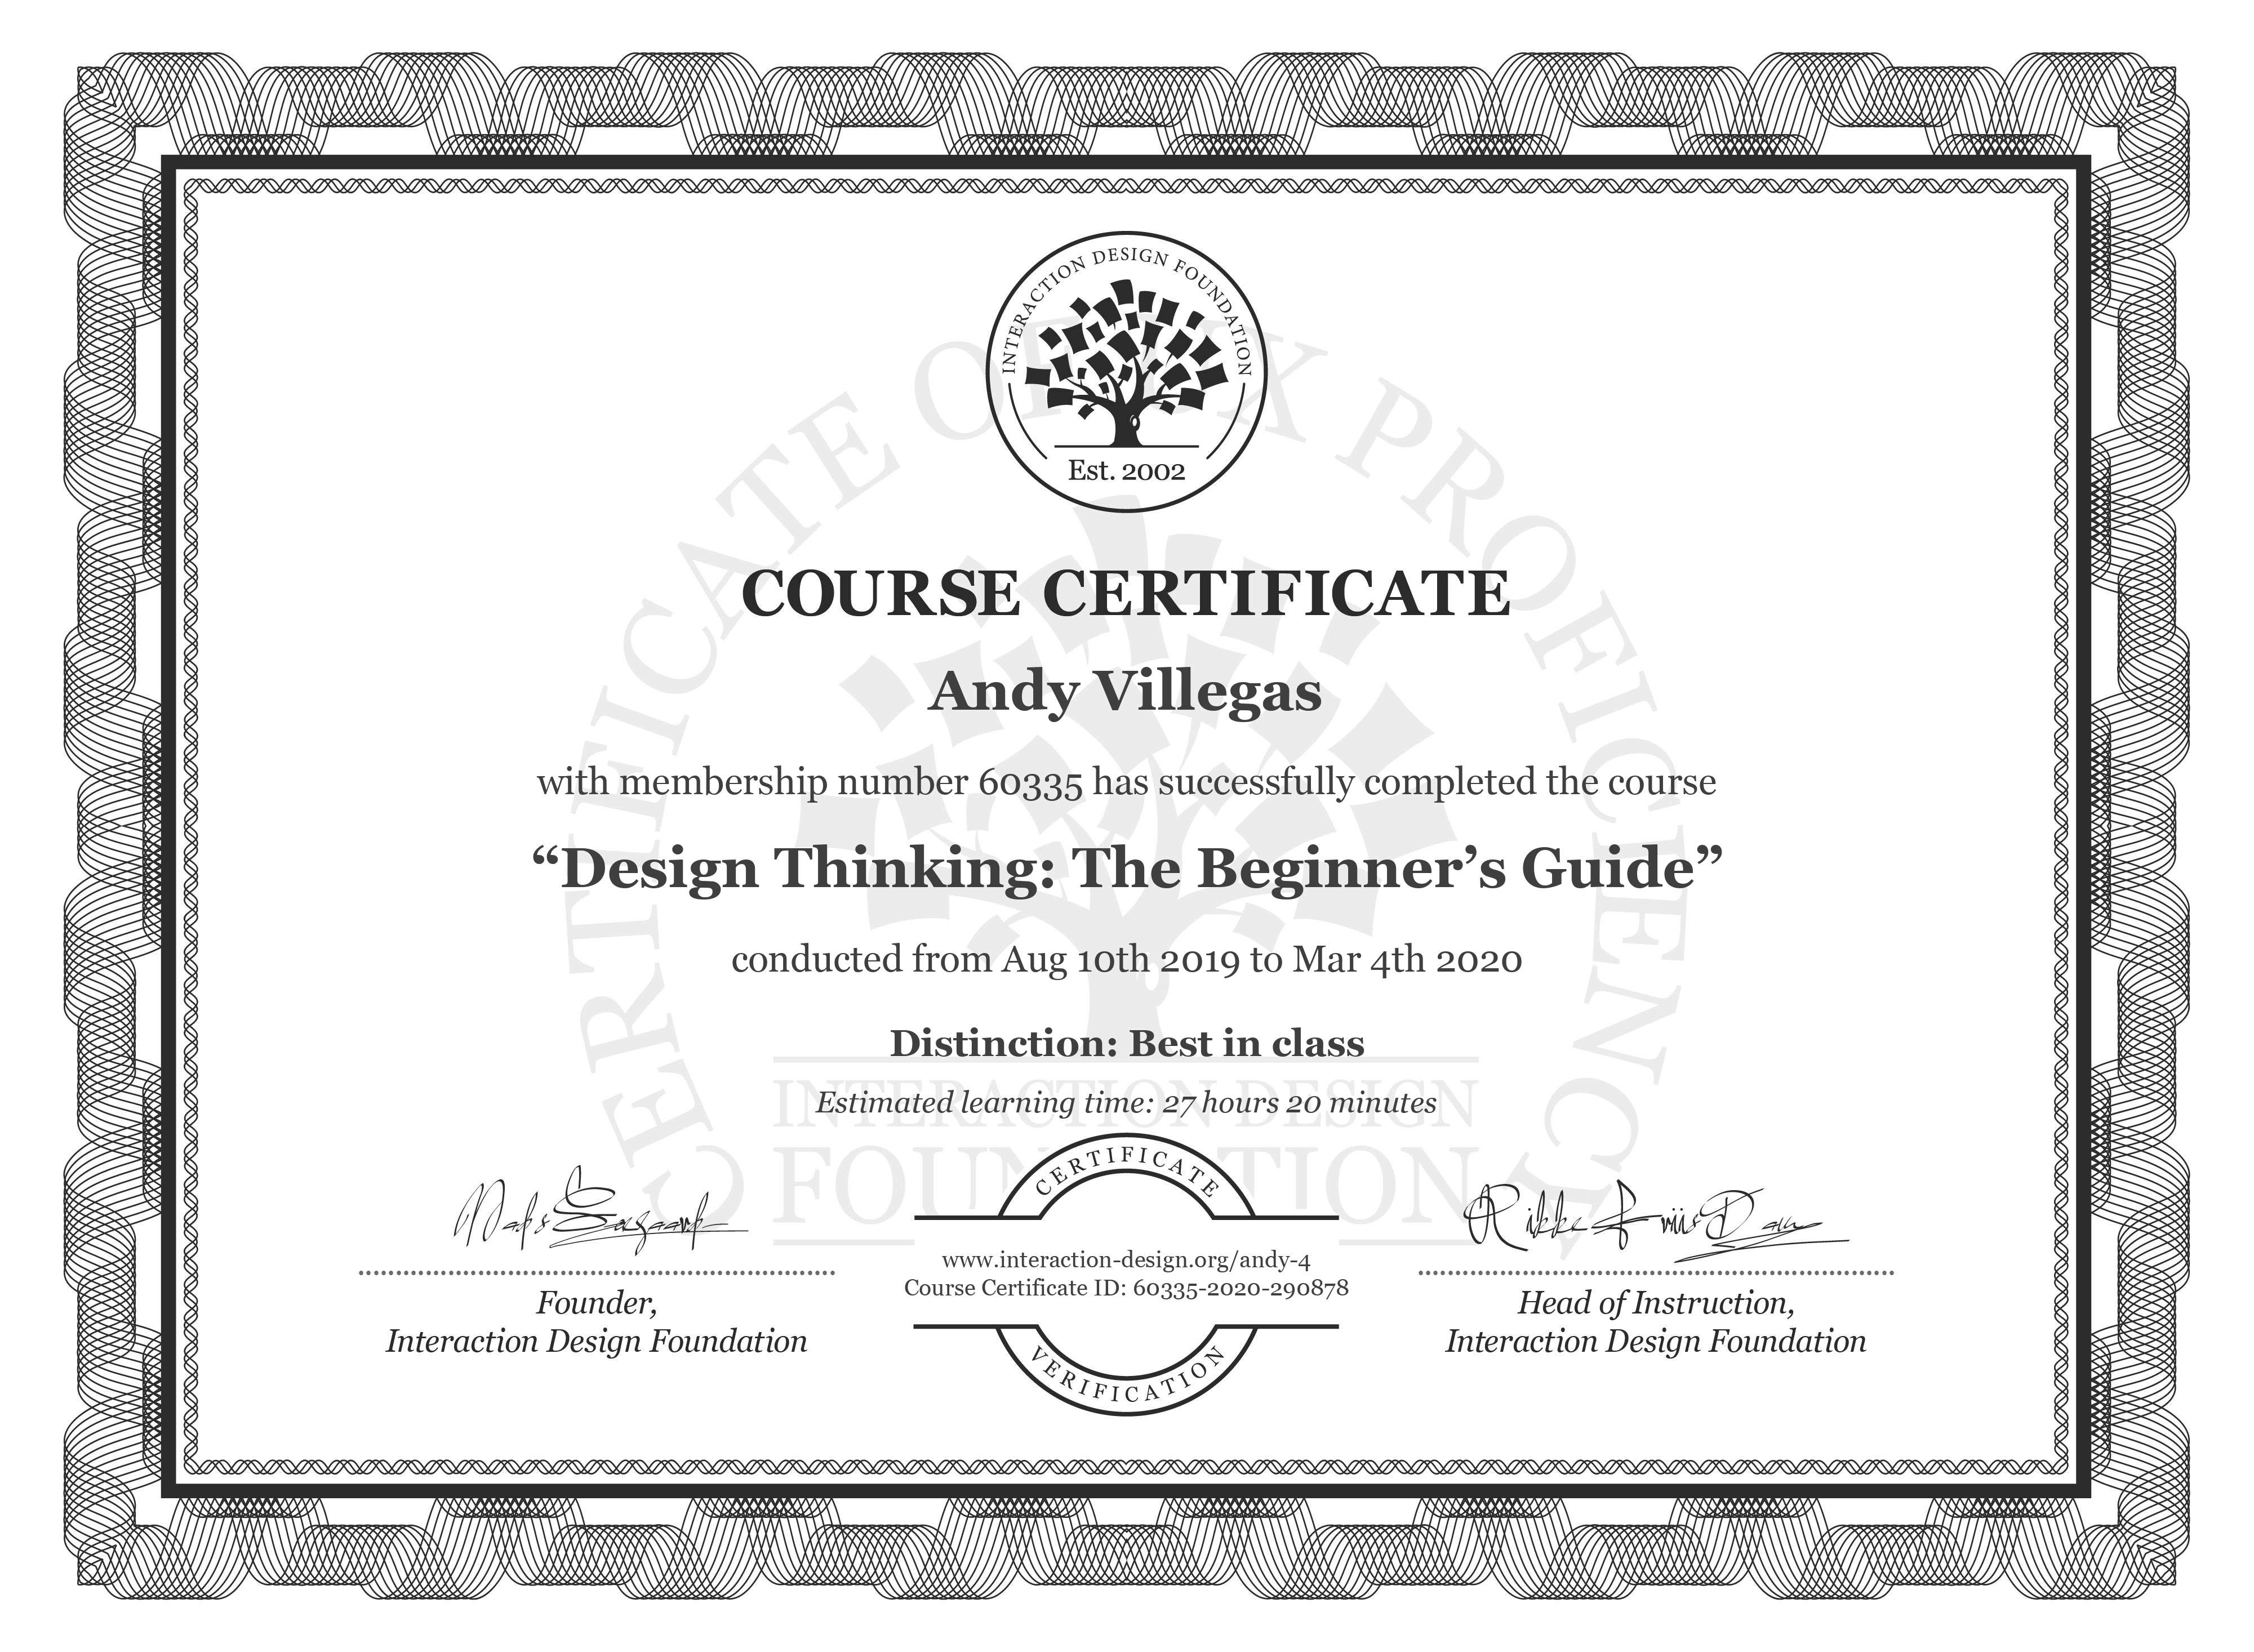 Andy Villegas's Course Certificate: Design Thinking: The Beginner's Guide